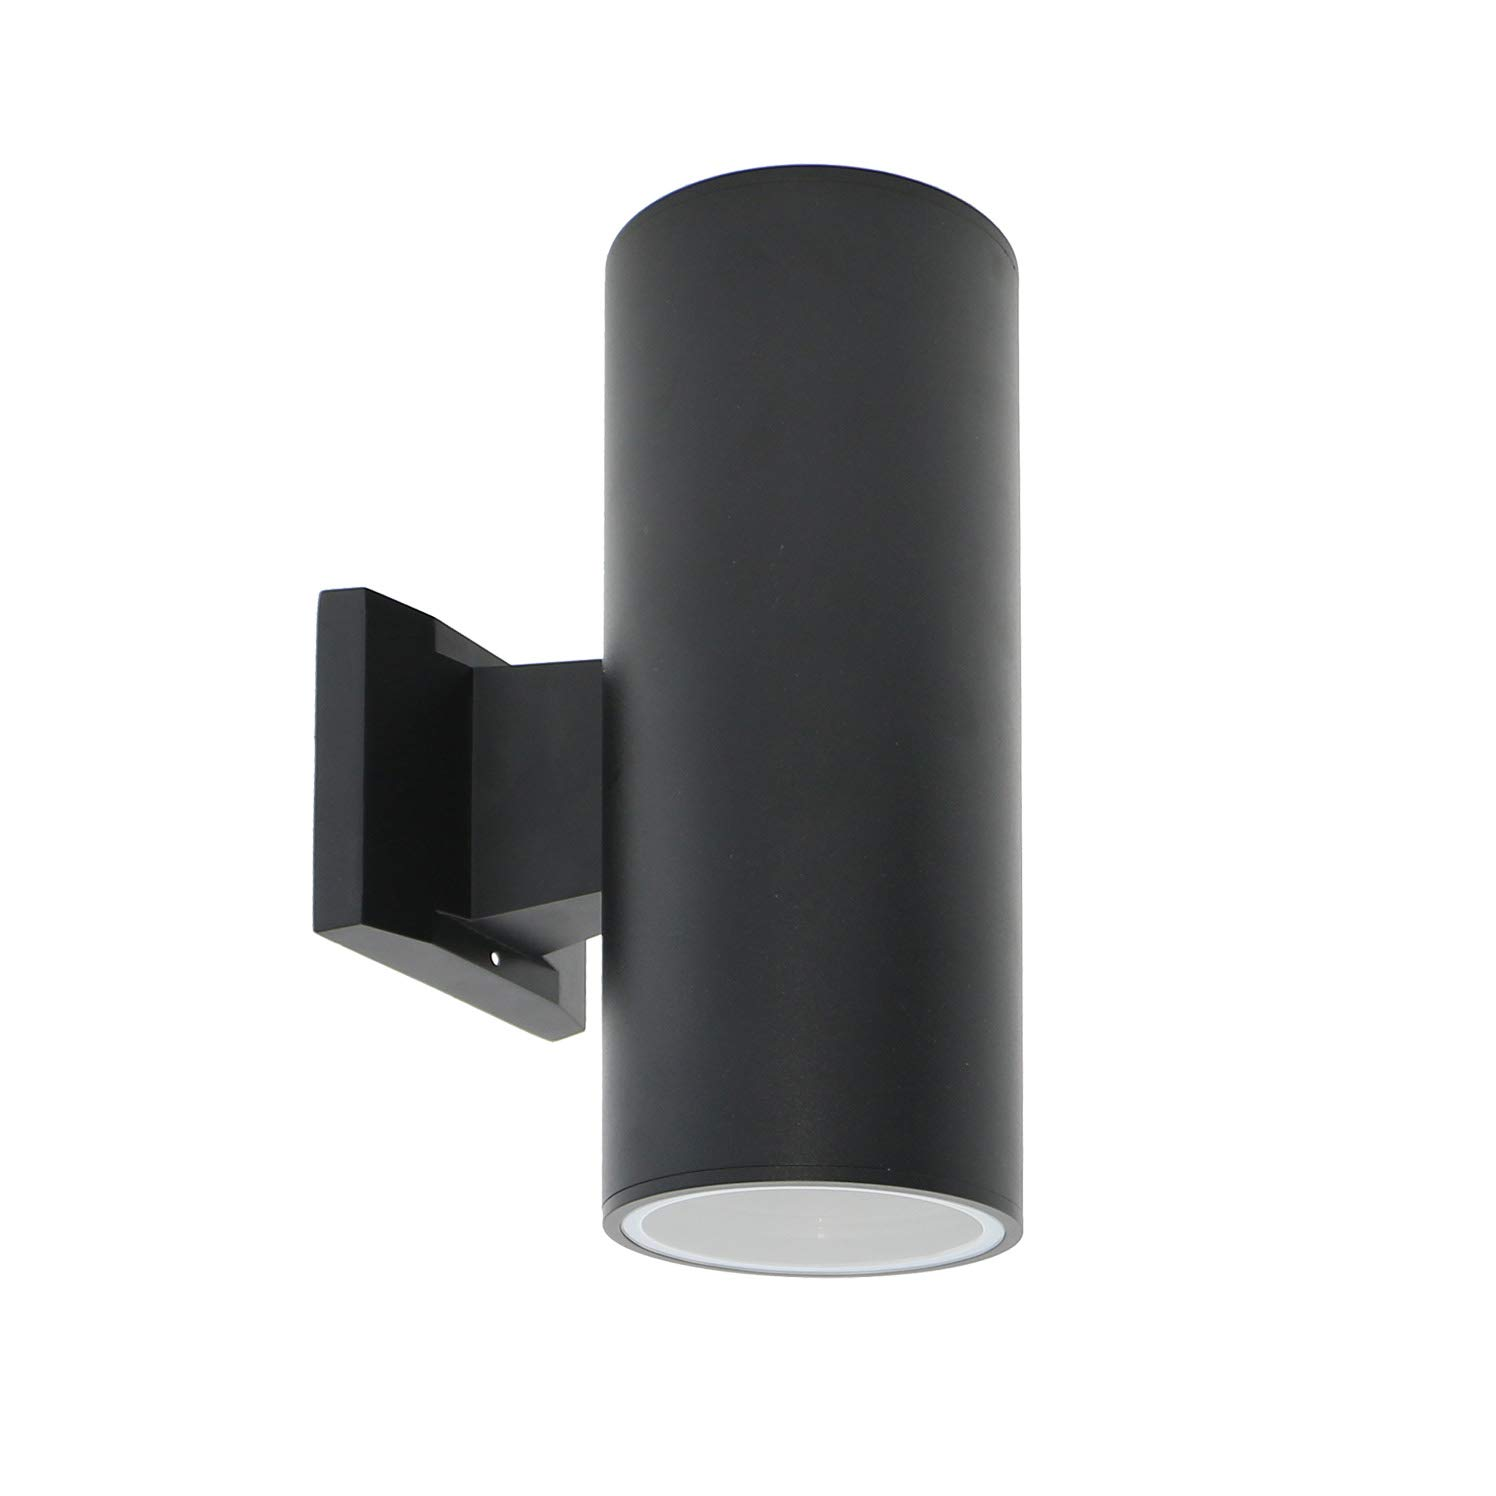 IN HOME 2-Light Outdoor Wall Mount Porch & Patio Cylinder Light C01, Modern Up Down Exterior Light Fixtures with Two E26 Base, Waterproof, Black Cast Aluminum Housing, ETL Listed